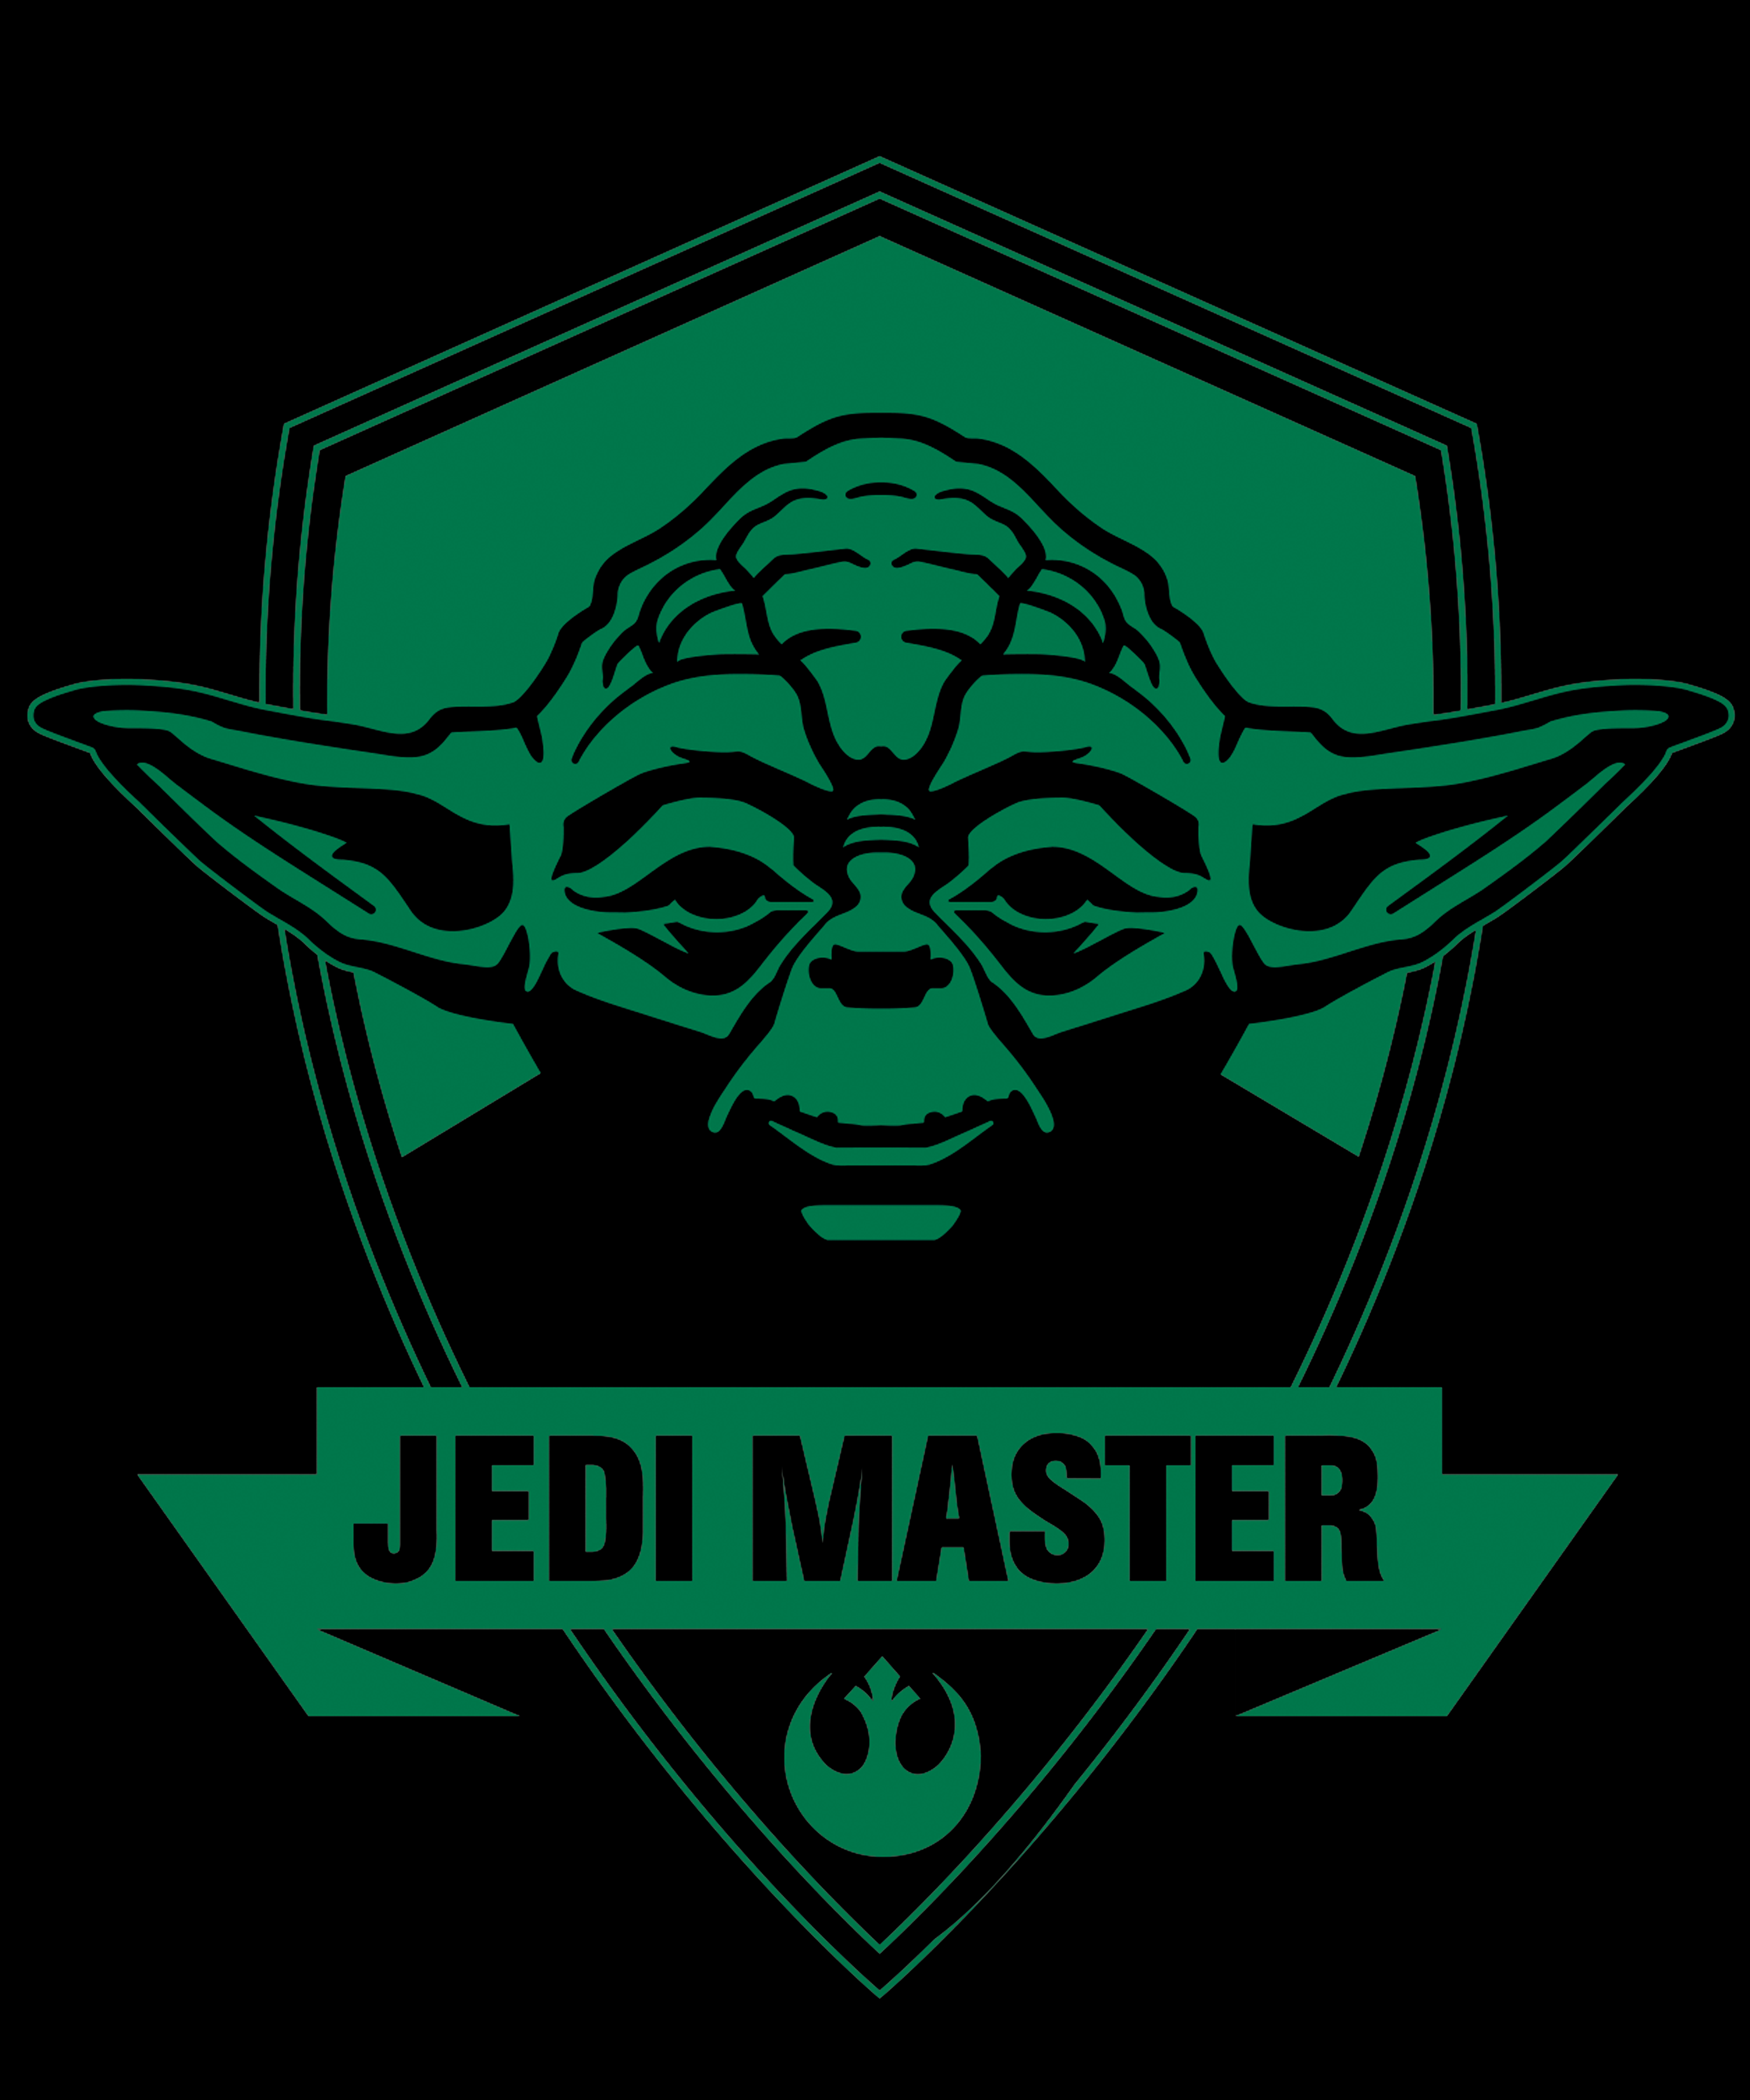 May The 4th Be With You Logo: Star Wars Yoda Jedi Master